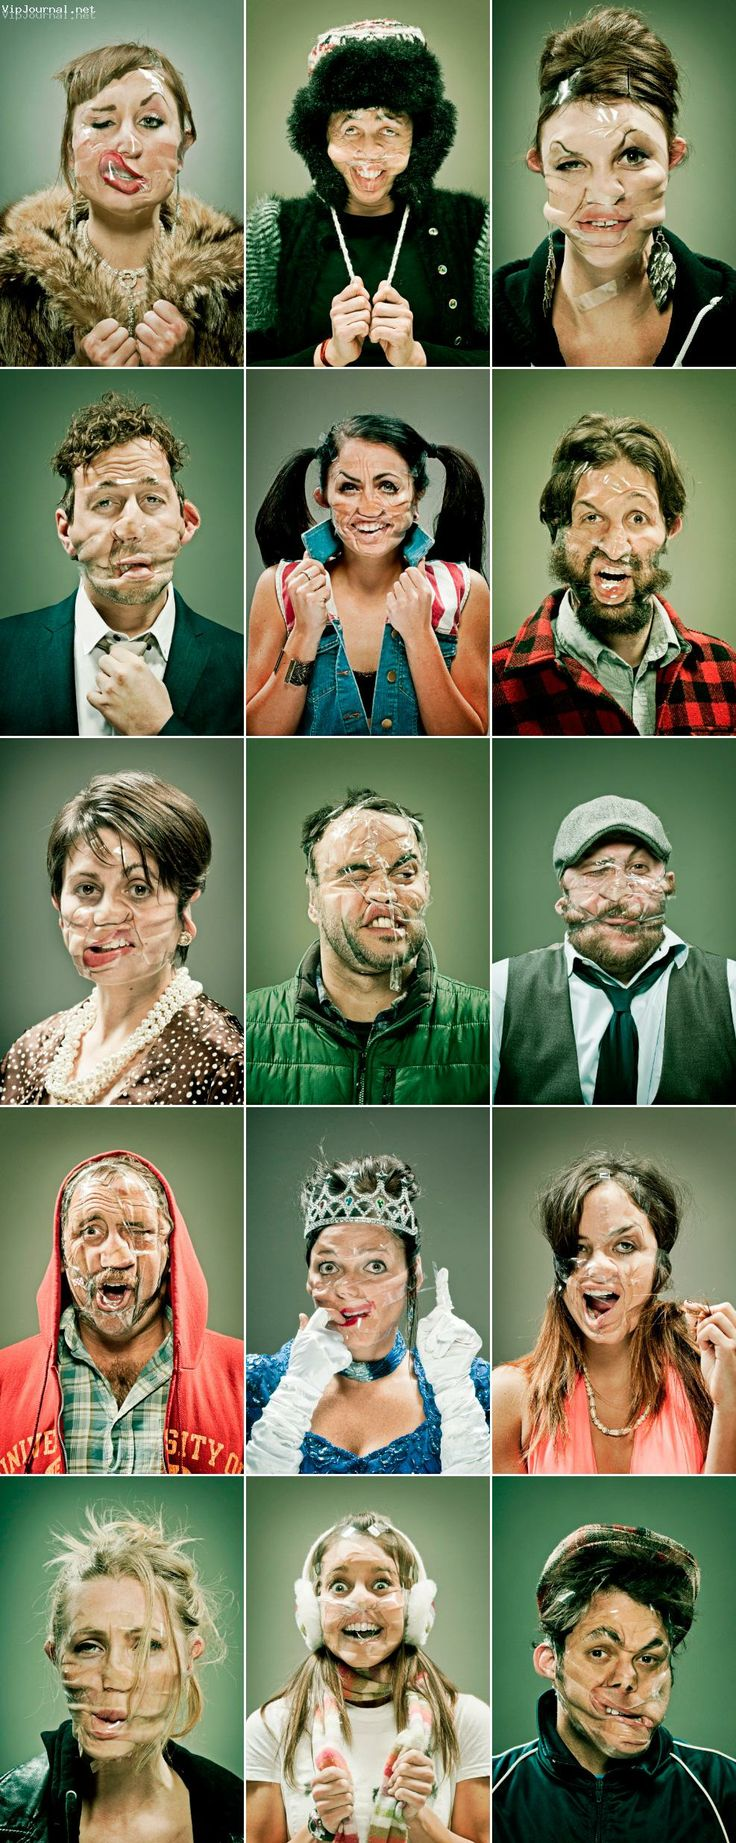 Scotch tape faces- I know what i'm doing at my next party!! Who's in?!